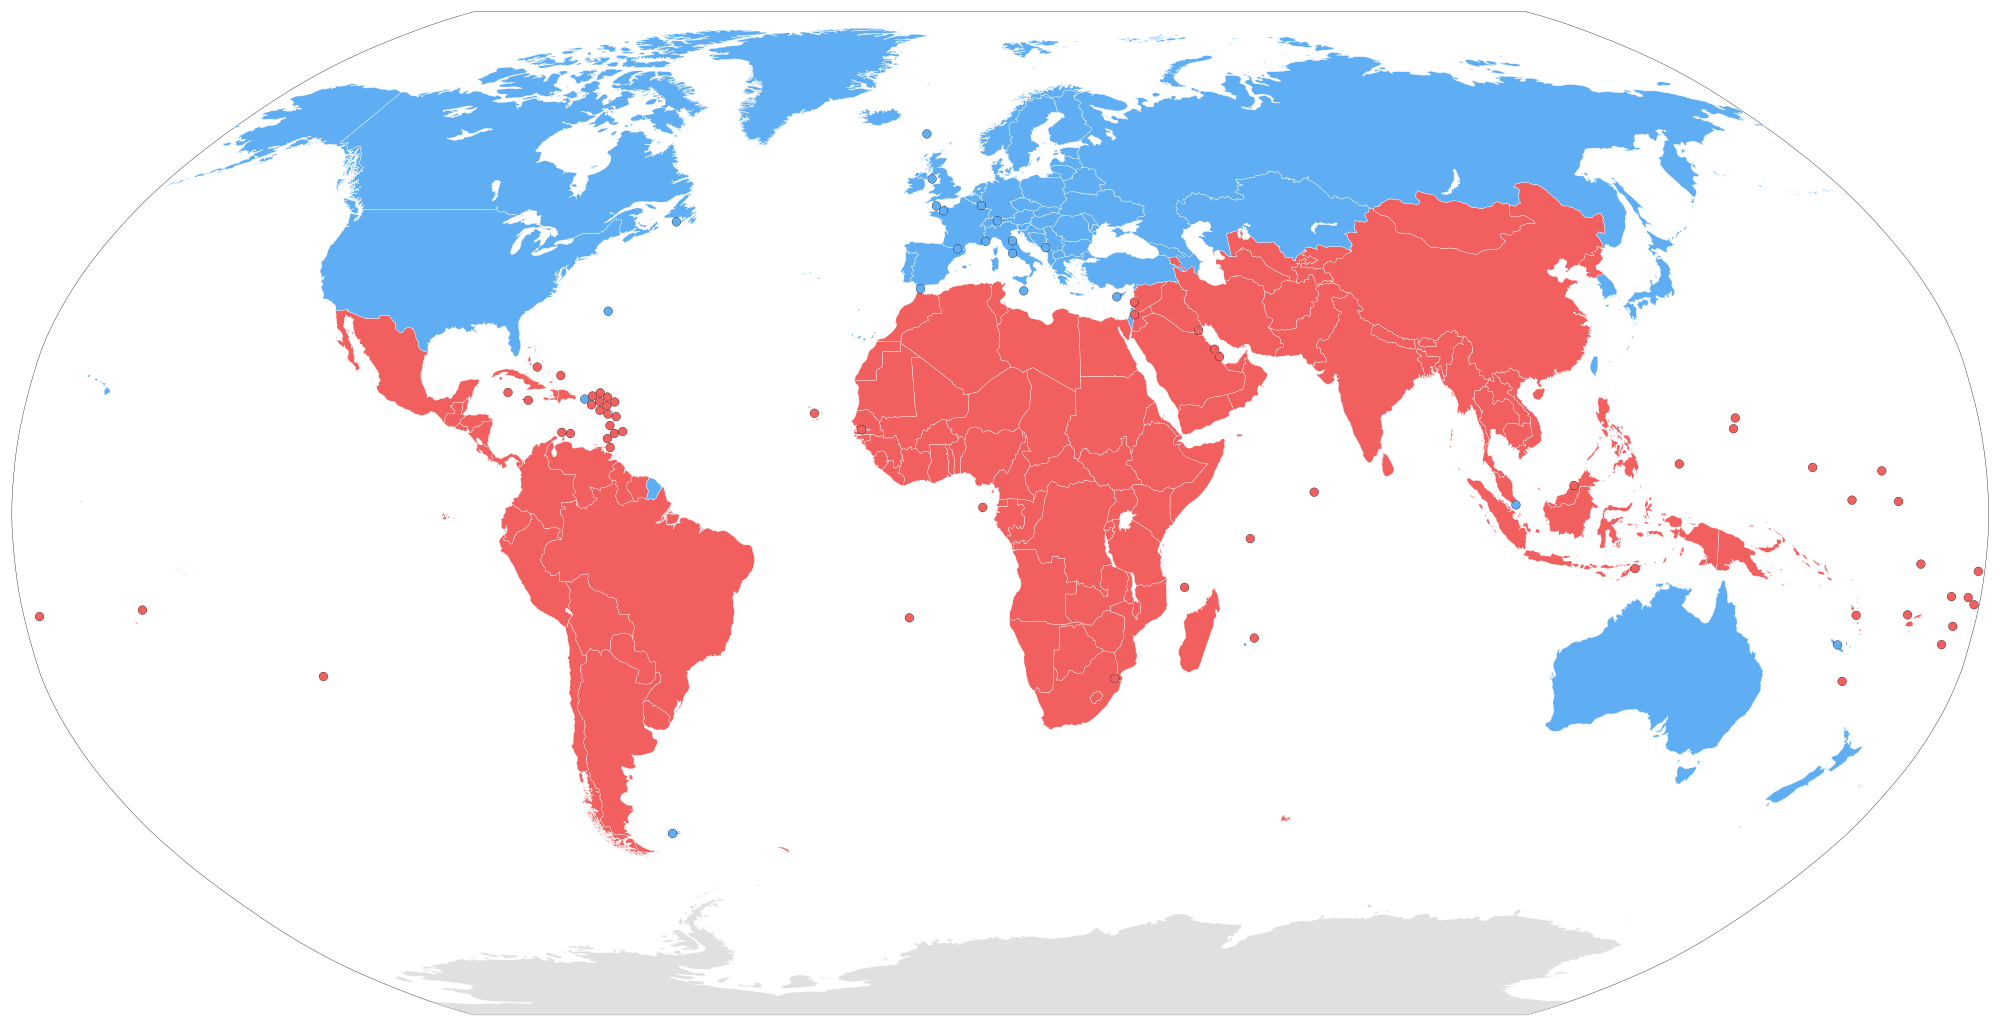 Humans clipart population global. North south divide wikipedia